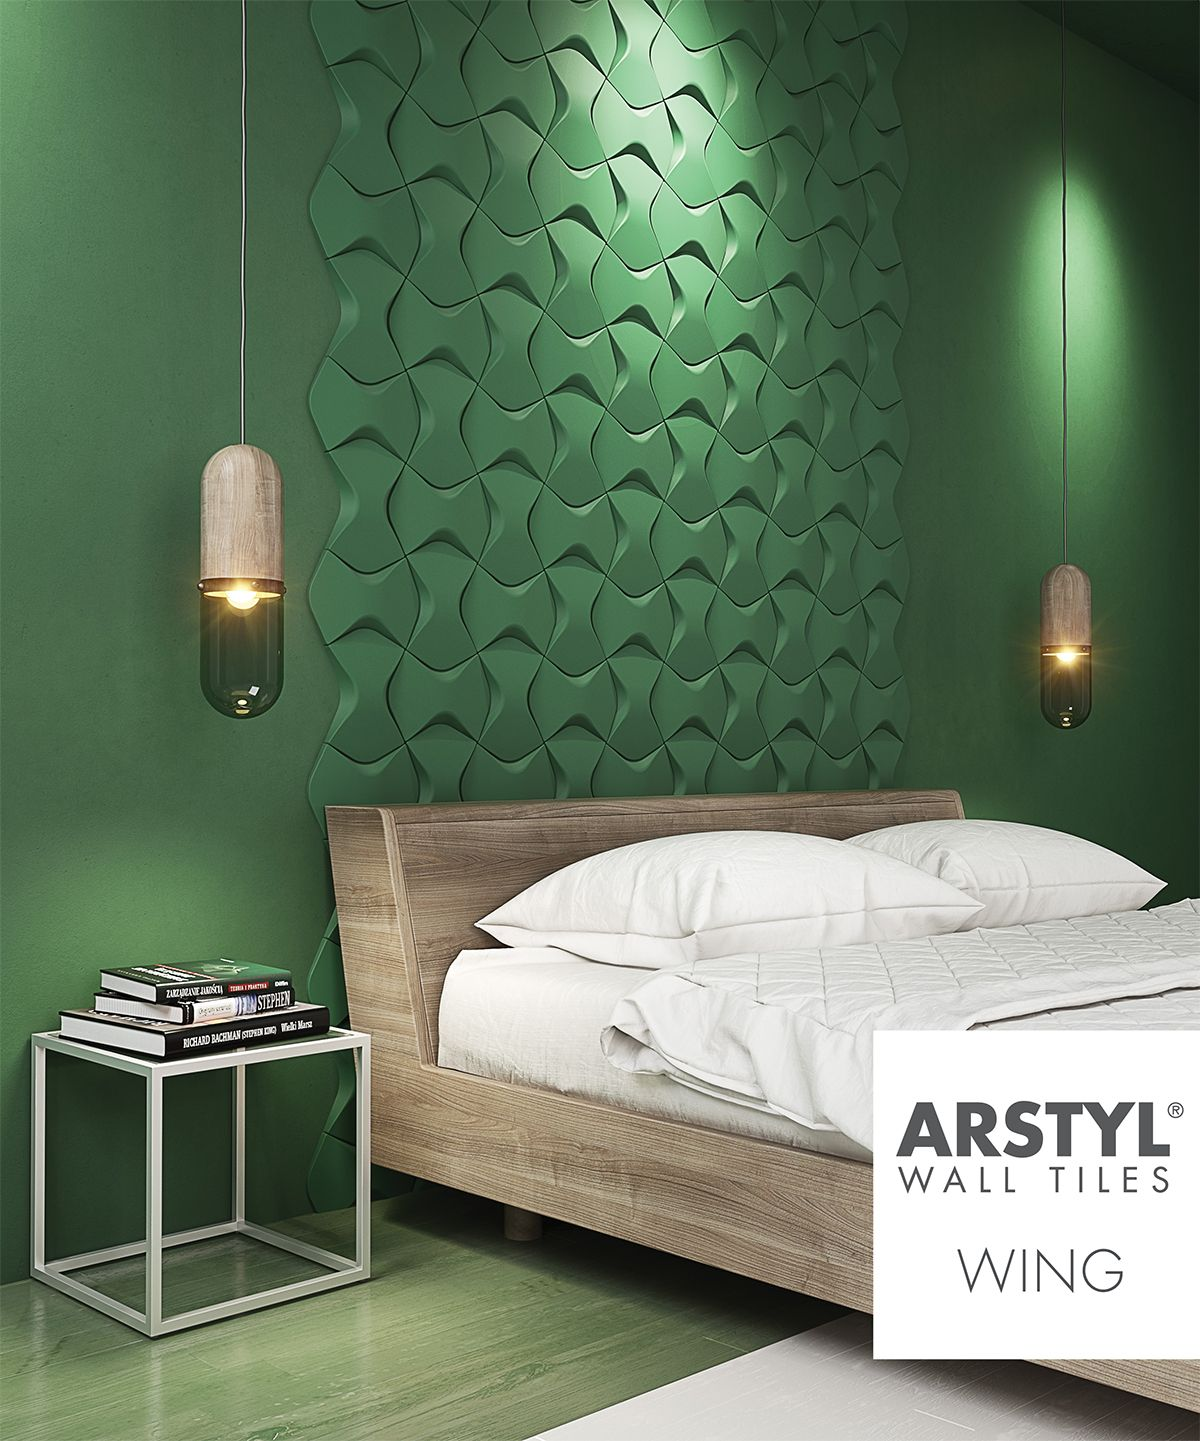 Arstyl Wall Tiles Wing Bedroom Wall Panels Bedroom Wall Tiles Living Room Living Room Tiles